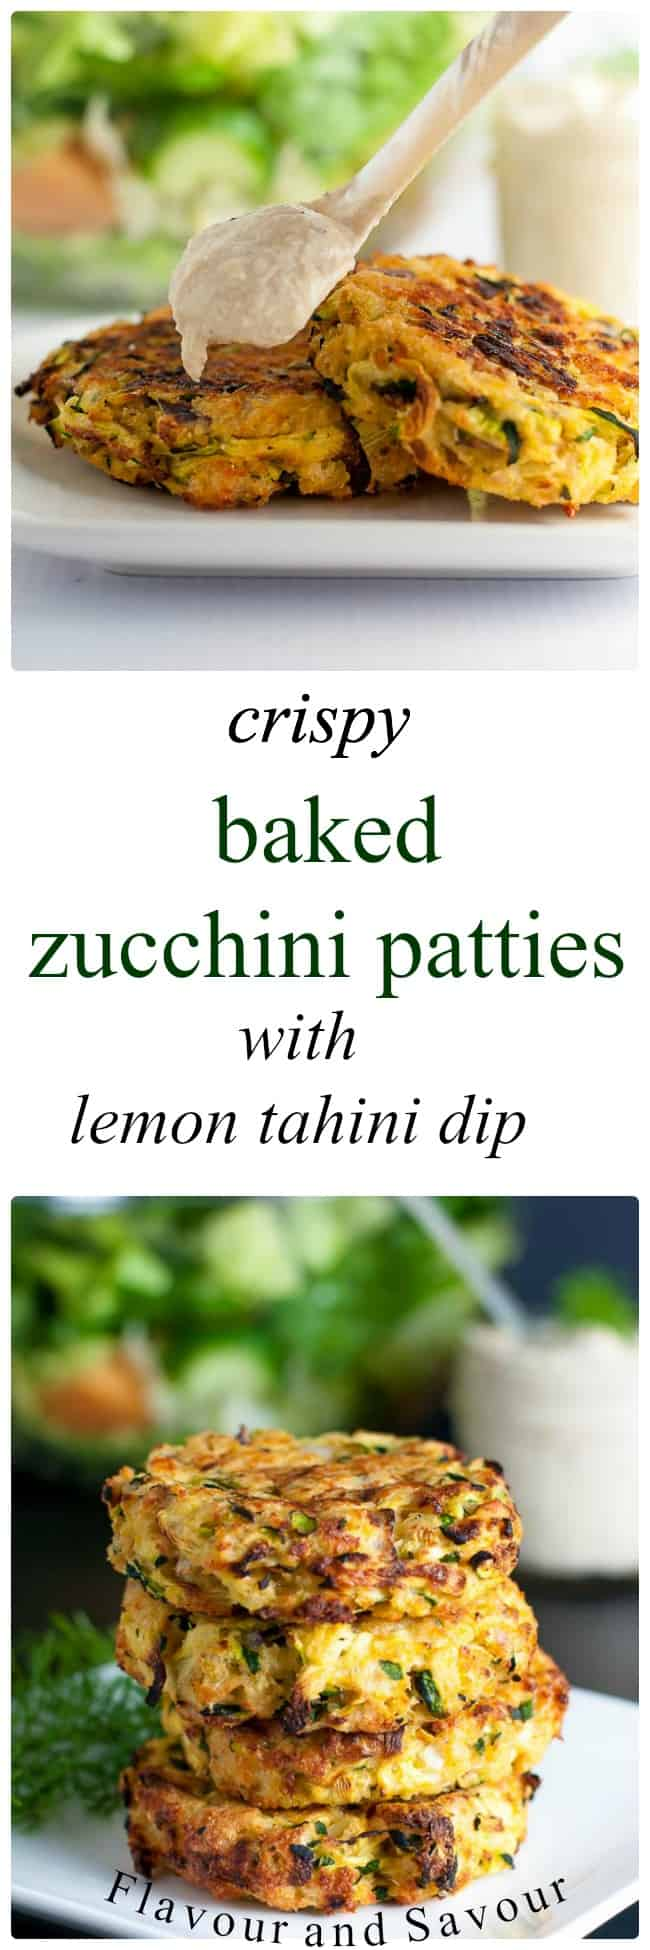 These Crispy Baked Zucchini Patties make a healthy, gluten-free, make-ahead meal. Get the instructions for properly draining zucchini to get crispy patties. #glutenfree #zucchini #baked #fritters #lemon_tahini